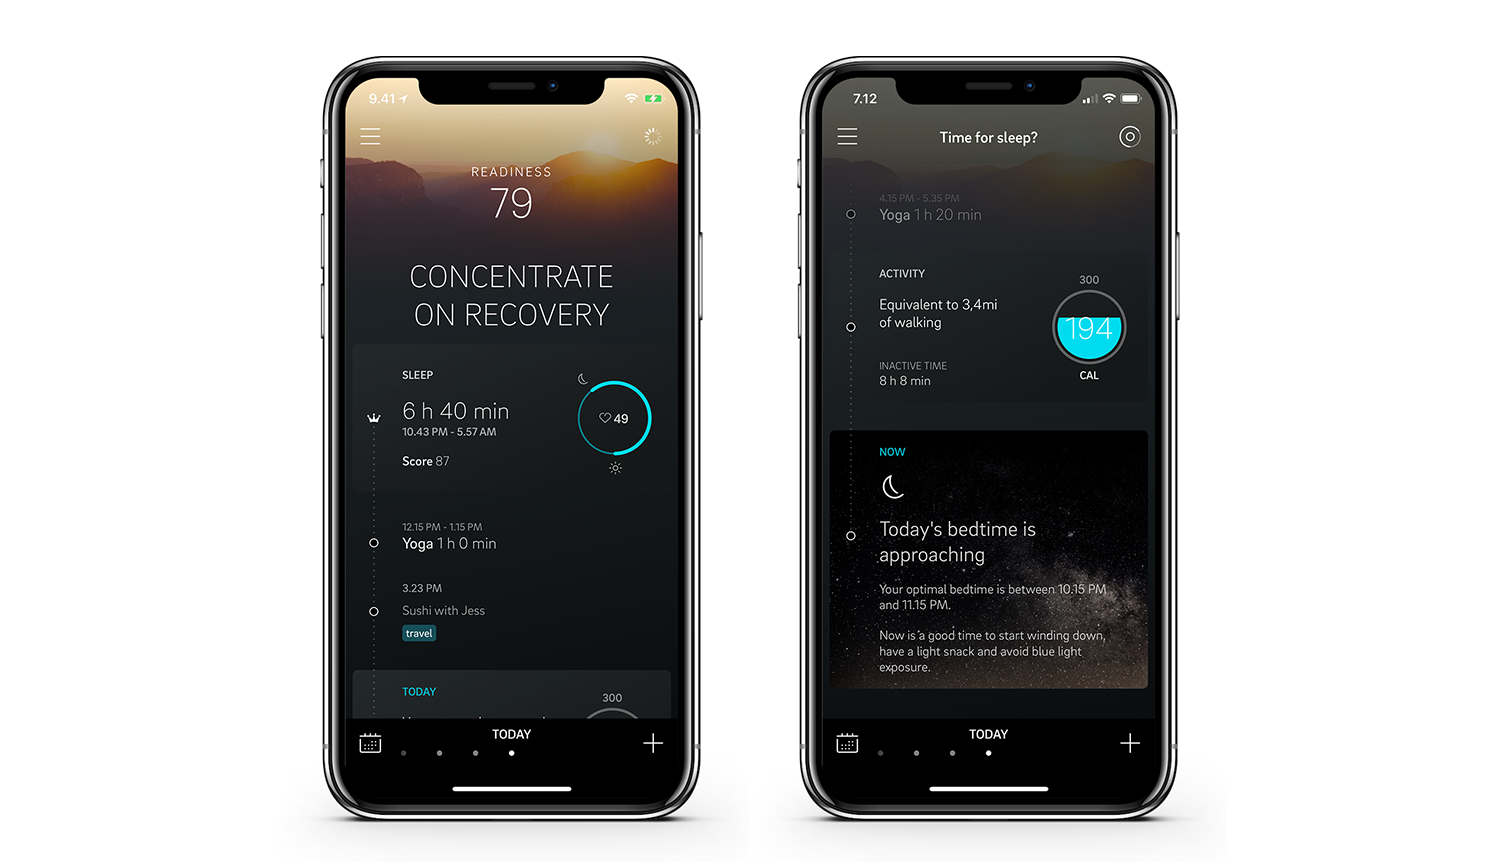 Bedtime approaching view on the Oura app